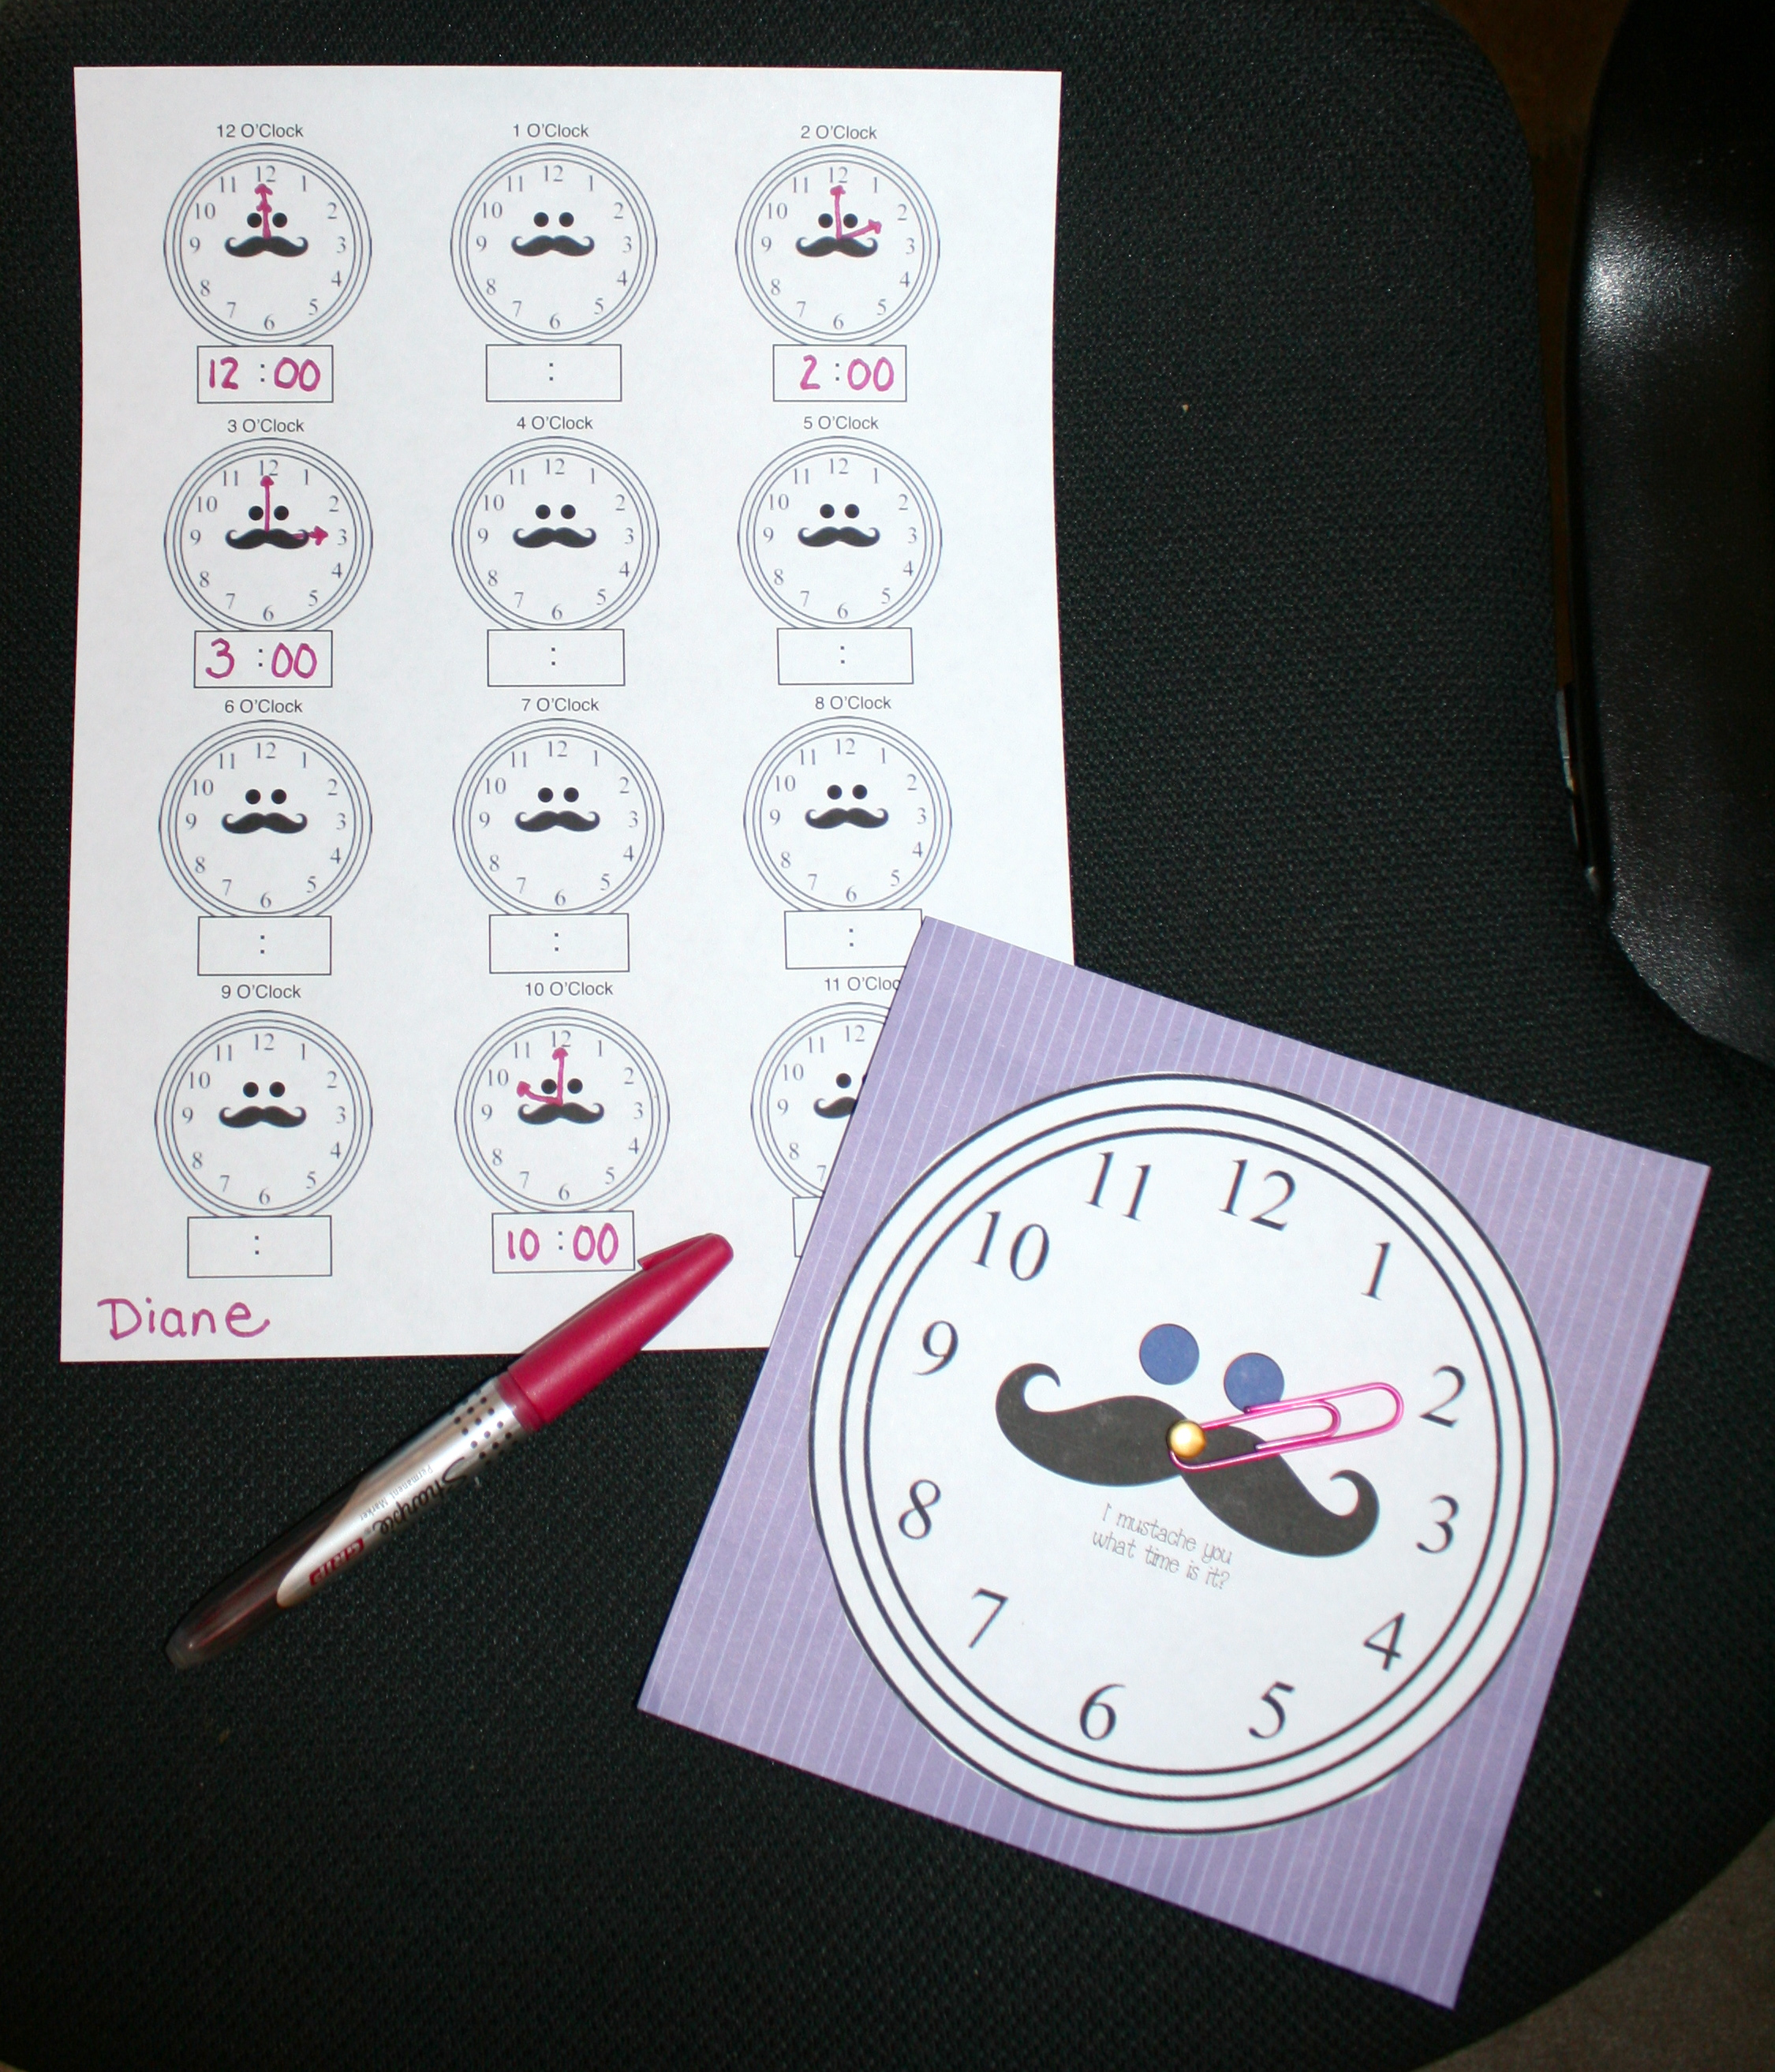 telling time activities, telling time games, 1.MD.3 common core lessons for kindergarten, common core lessons for 1st grade, mustache games, mustache activities, mustache lessons, clock templates, clock games, digital time worksheets, analog time worksheets, free common core lessons for kindergarten and first grade,